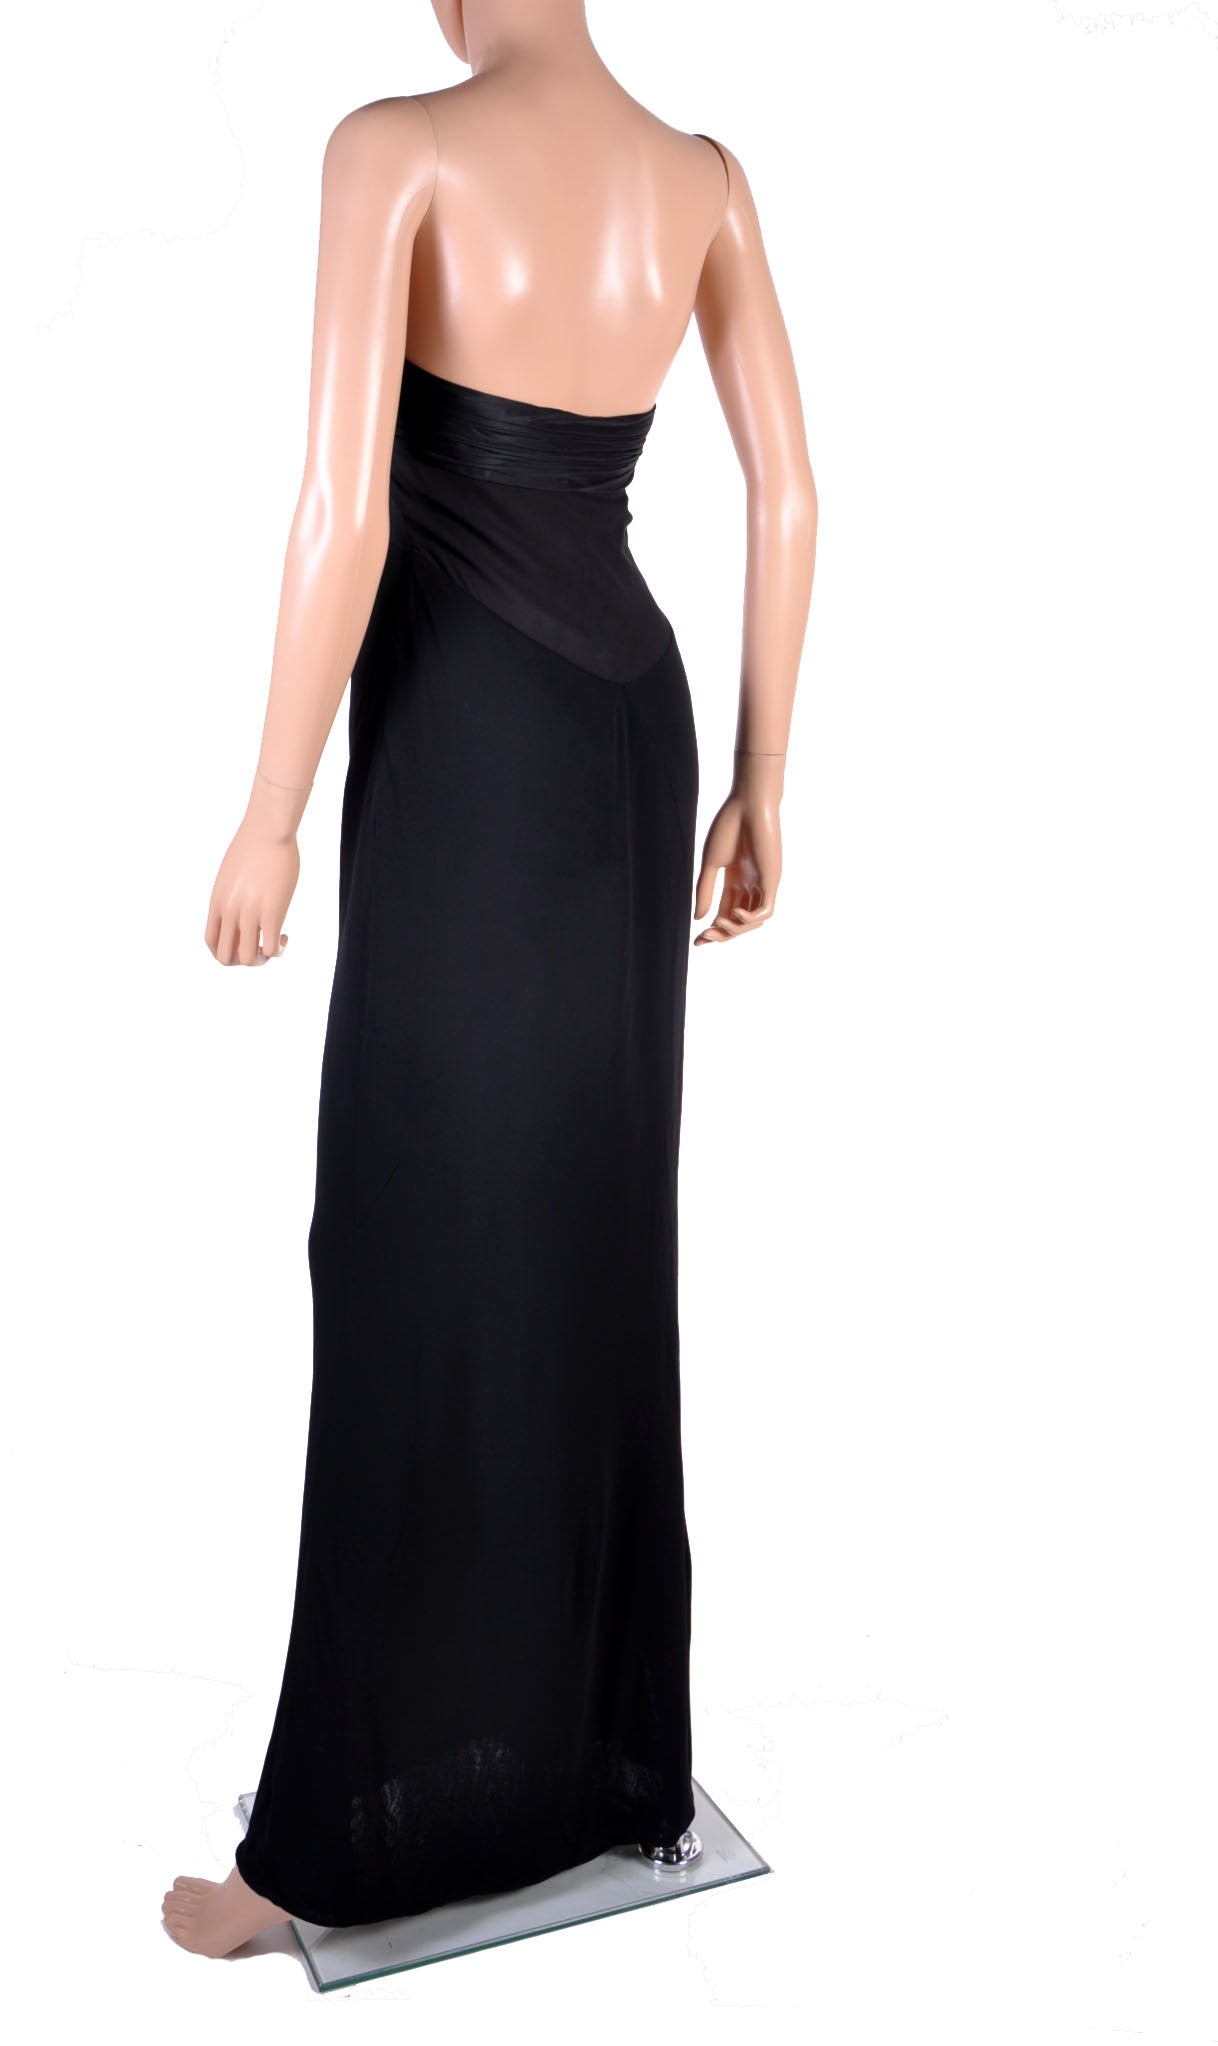 New VERSACE BLACK STRAPLESS DRESS GOWN For Sale 1